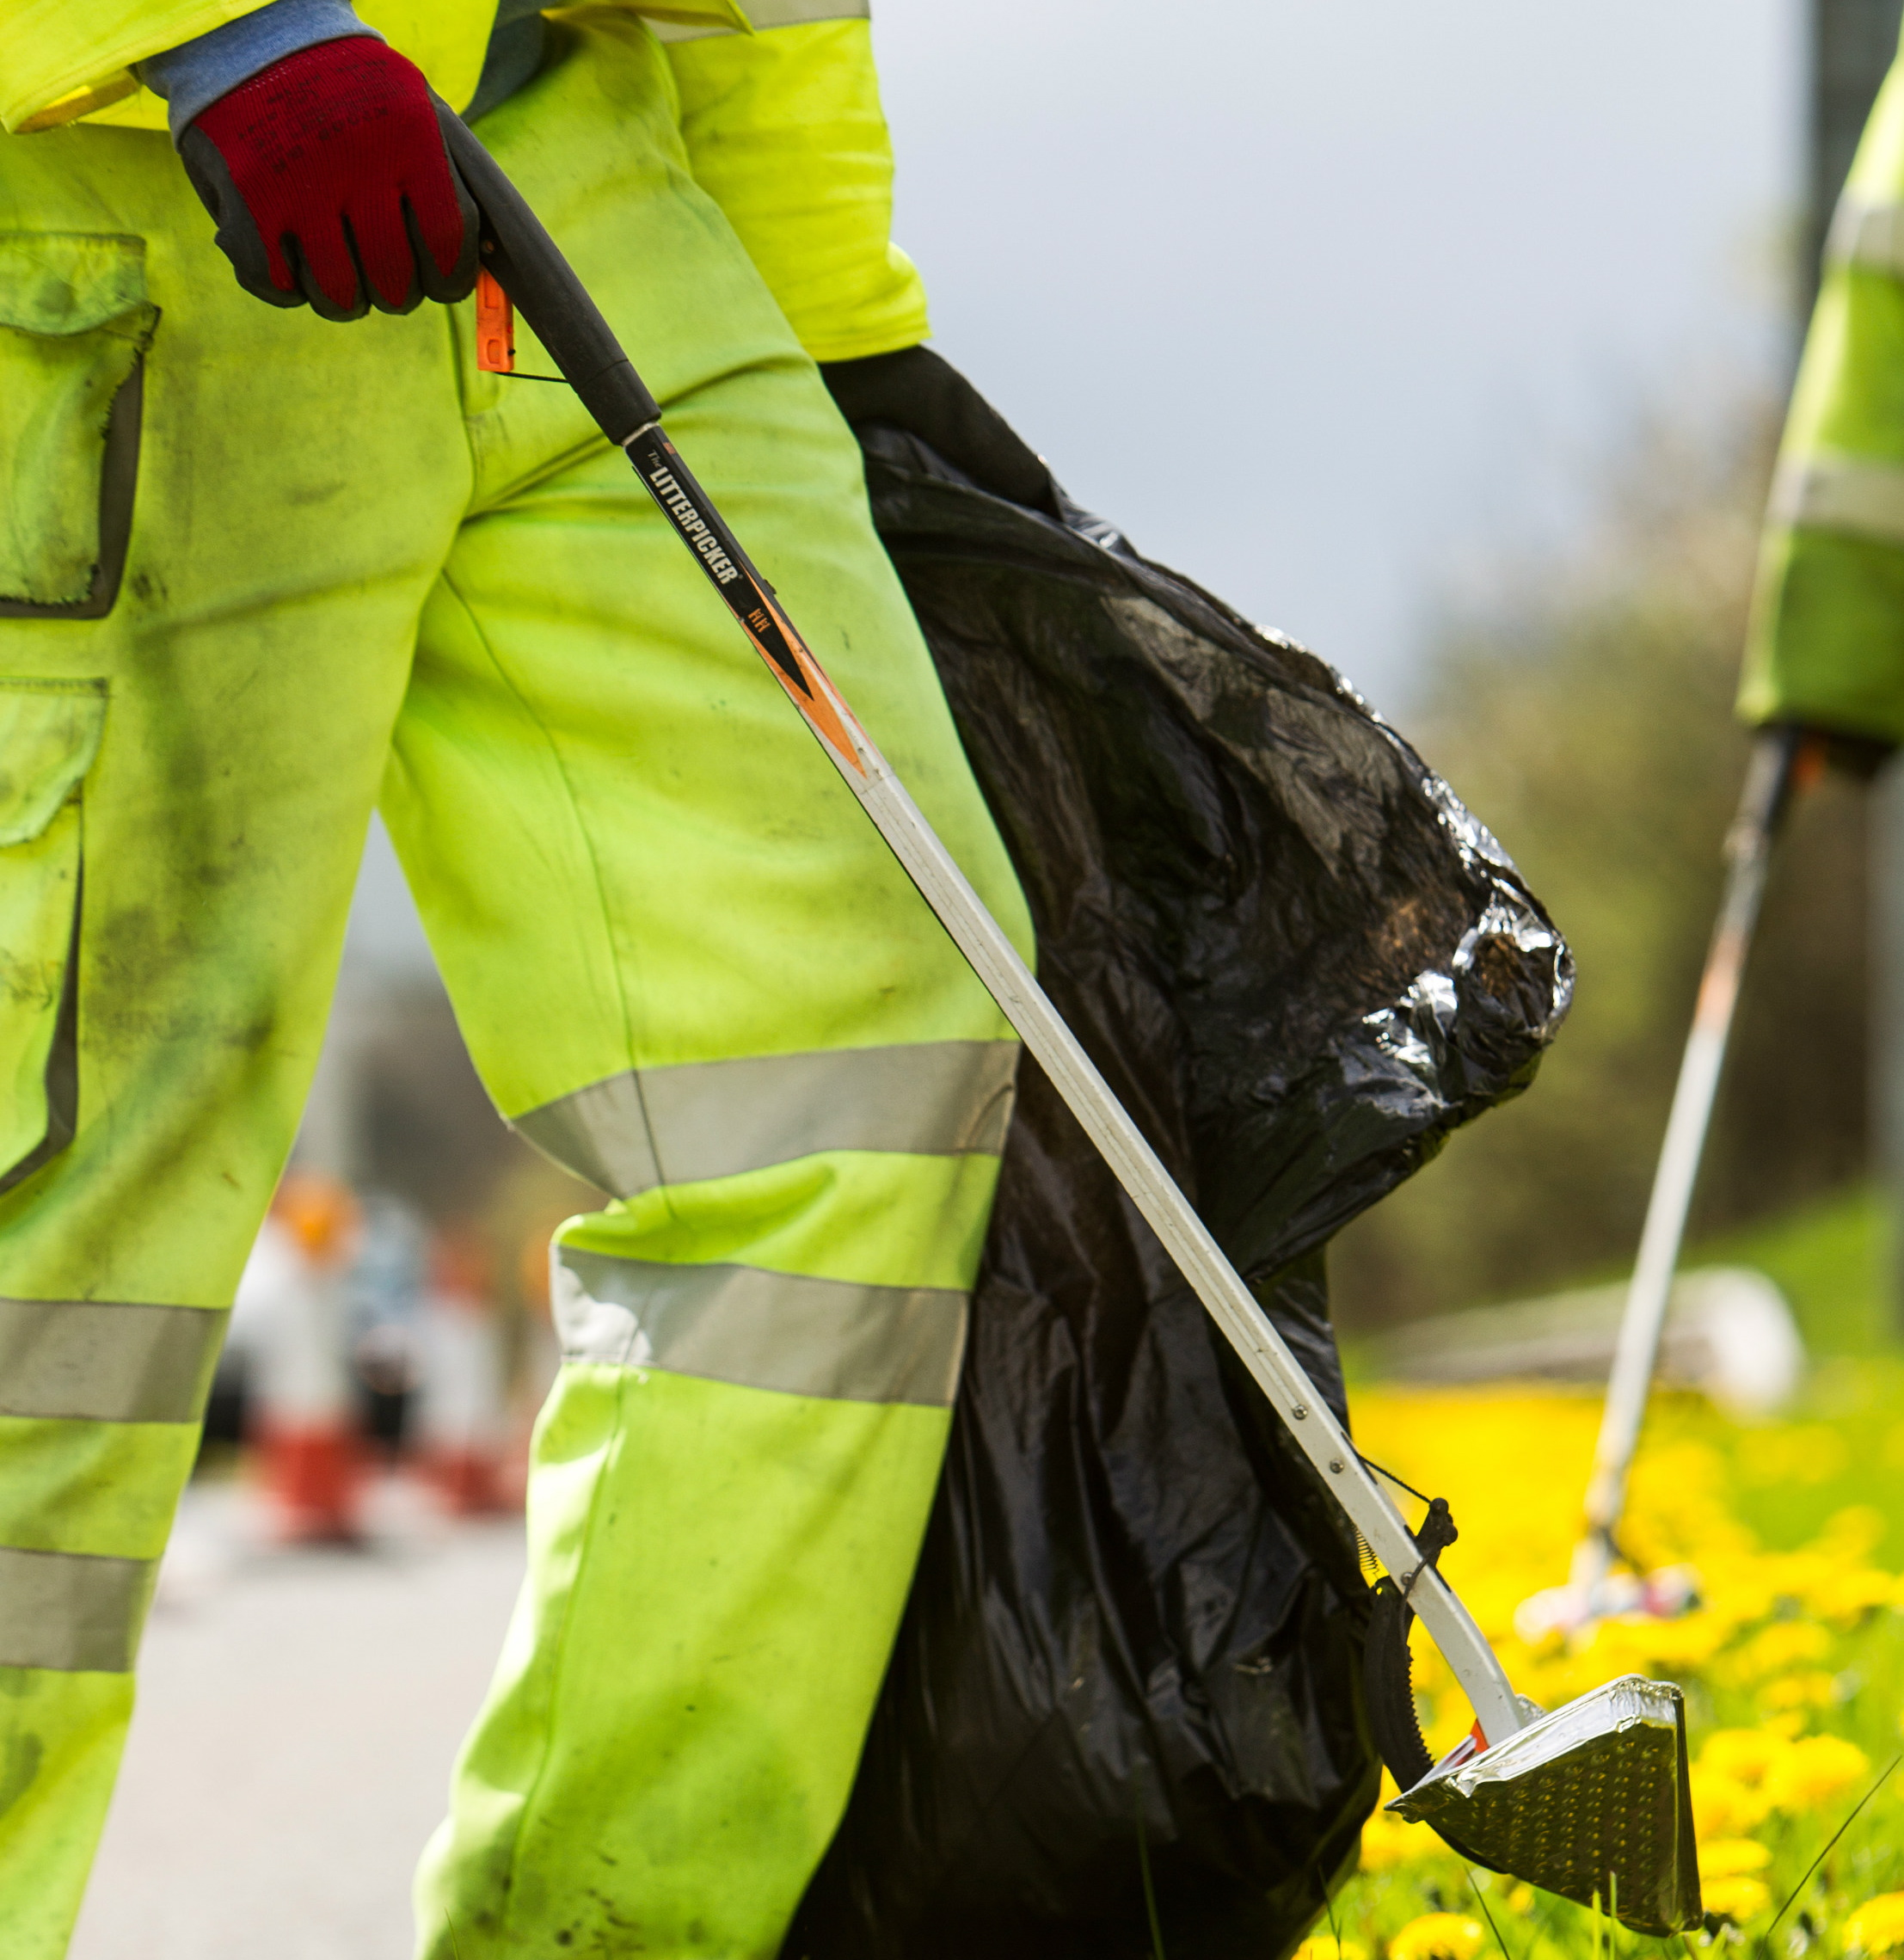 FEATURE: Fighting back in the battle against litter